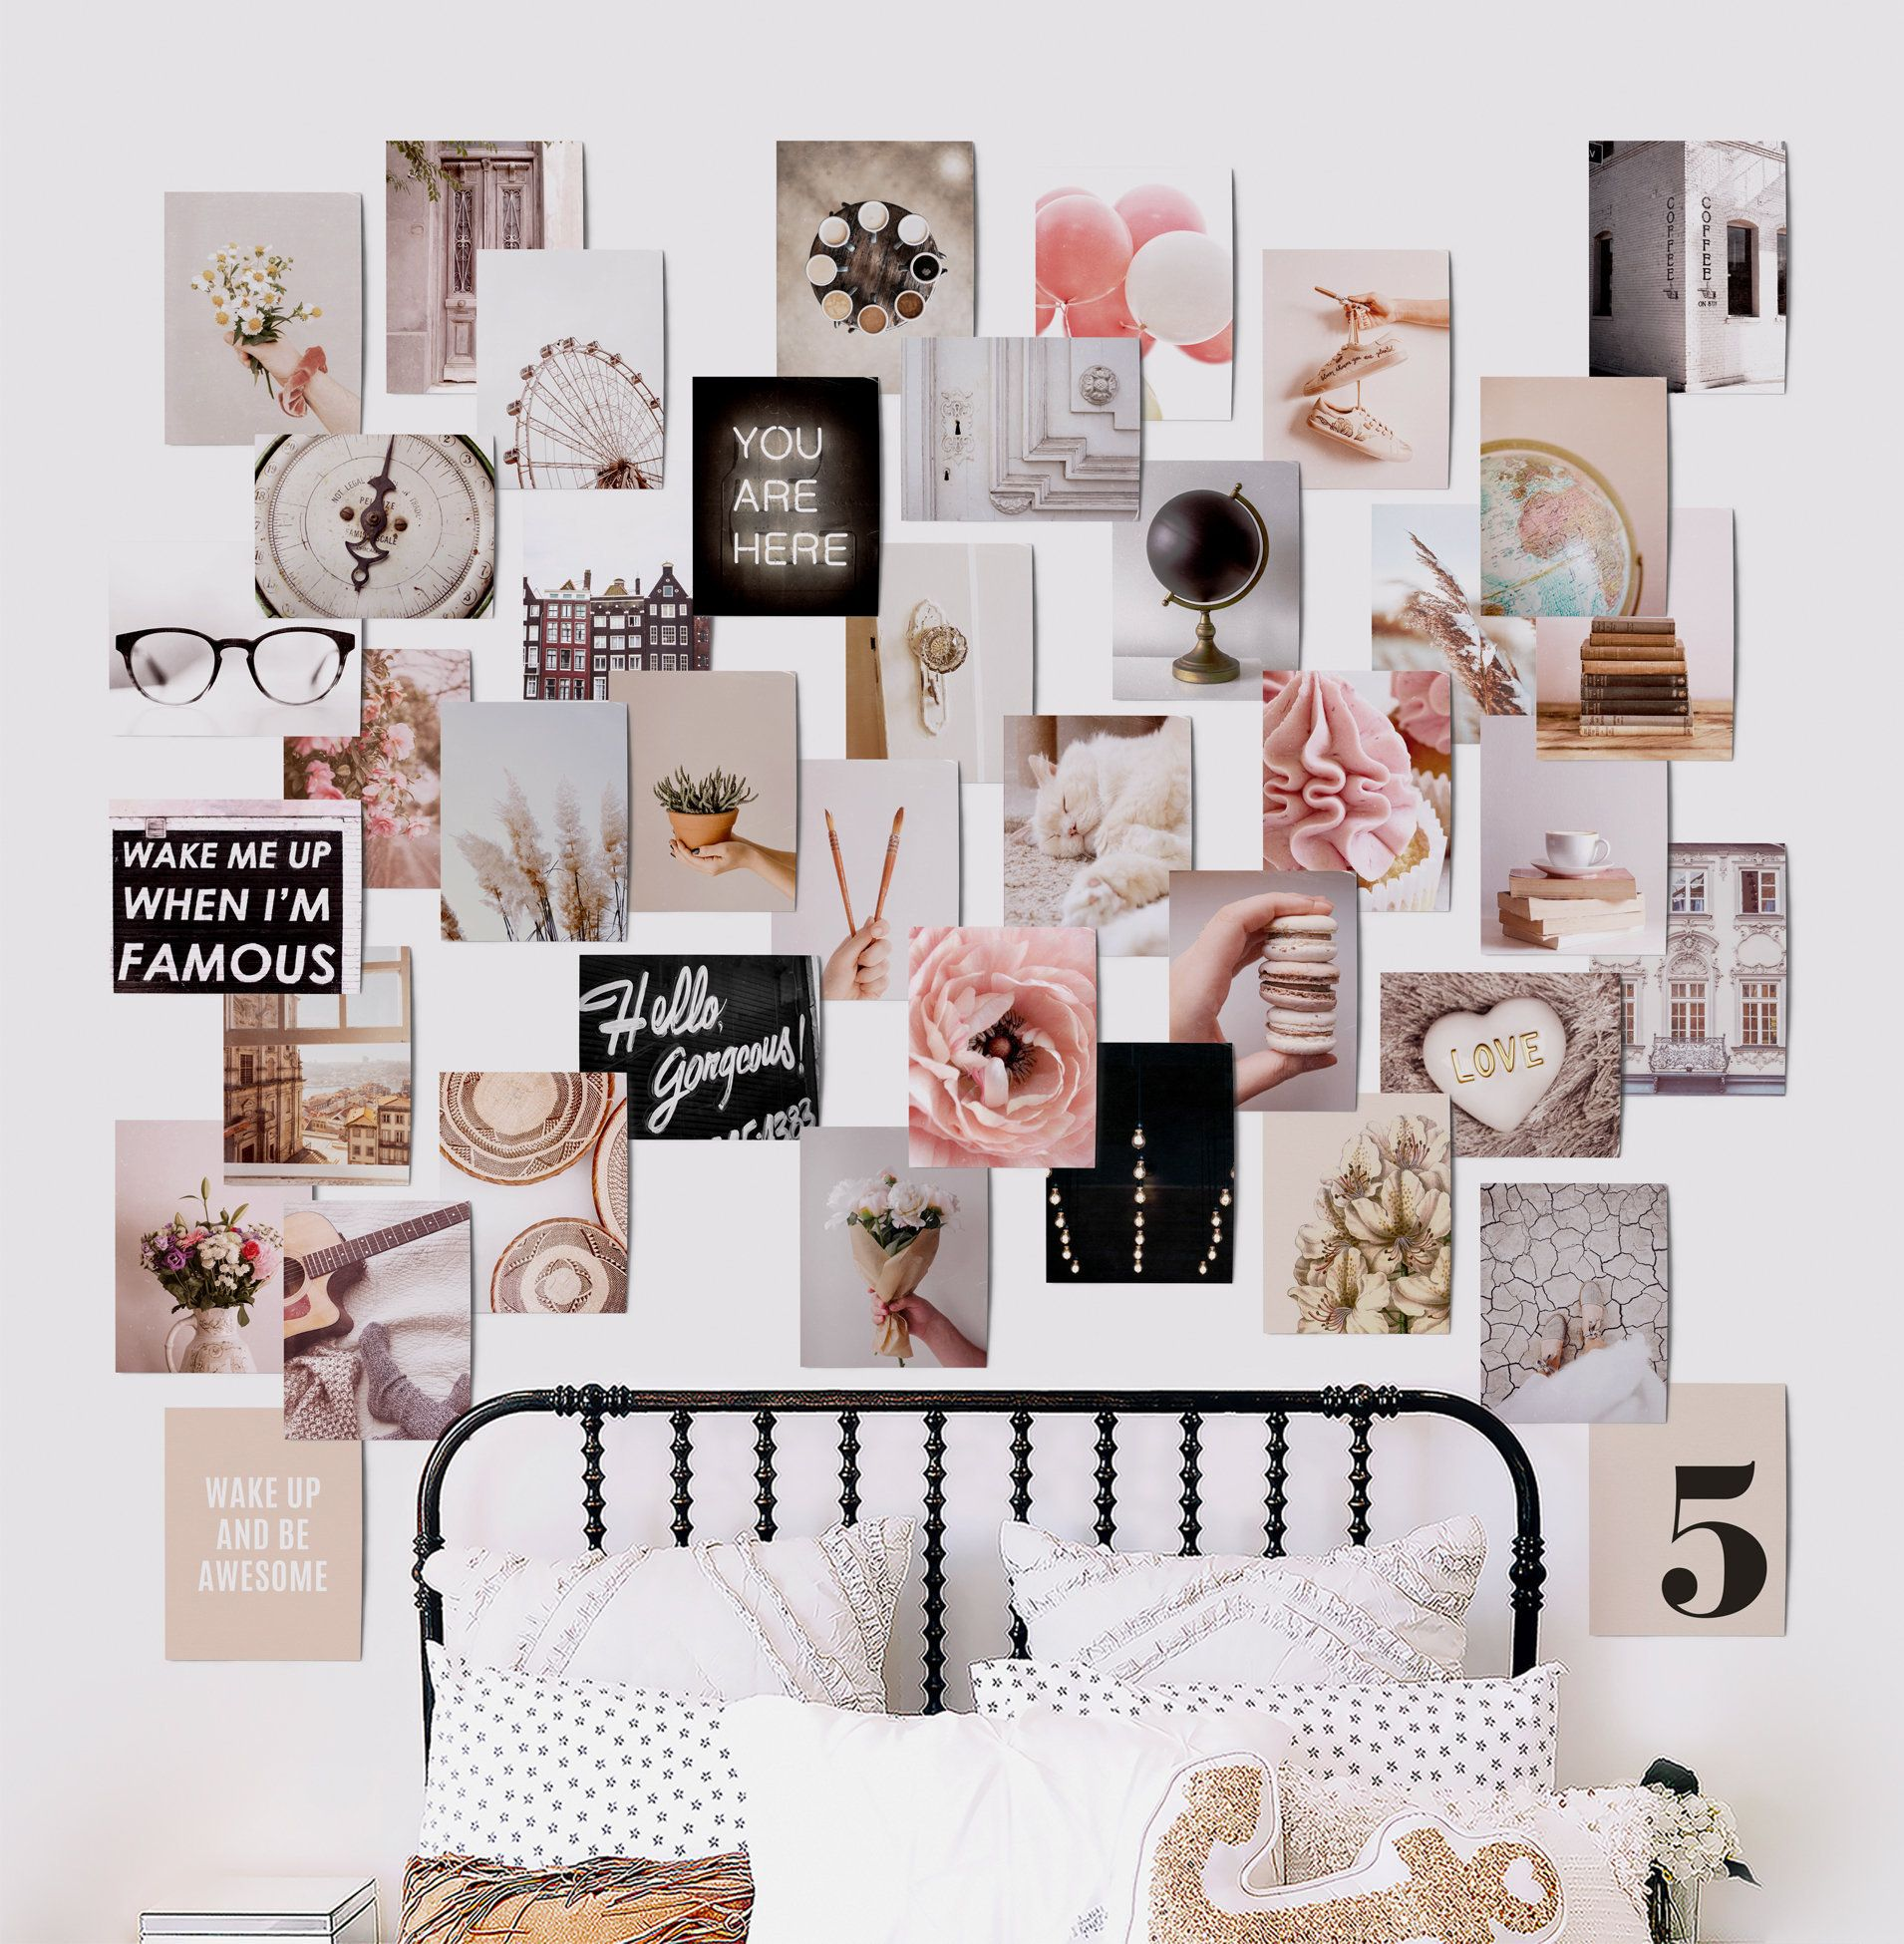 Digital Printable Pink And Gray Gallery Wall Collage Kit Set Of 40 Size 8 5x11 Moody Collage Wall Art Kit Moody Art Bedroom Decor In 2020 Art Collage Wall Nursery Wall Collage